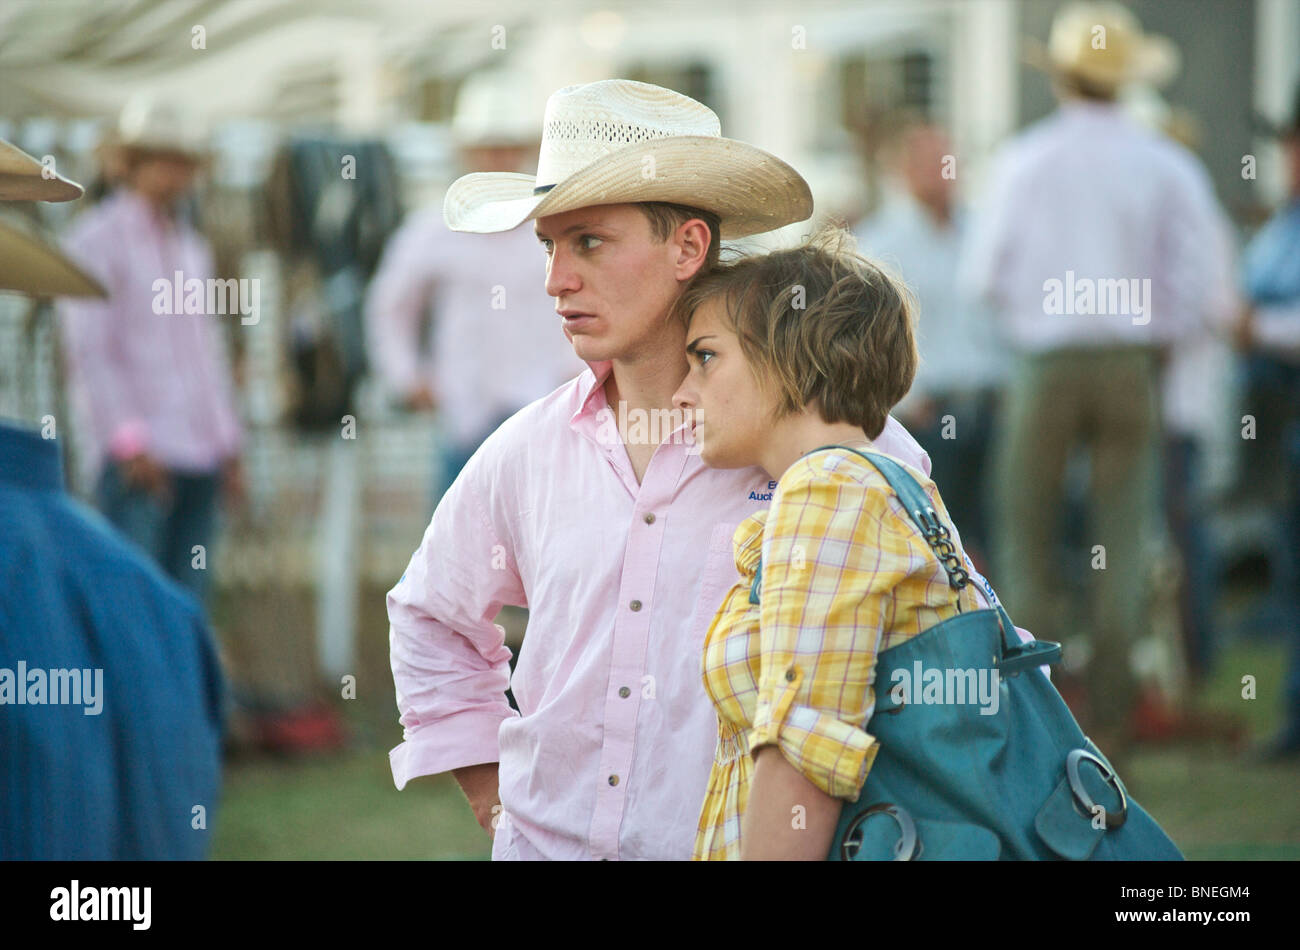 Cowboy with his wife backstage at  PRCA rodeo event in Bridgeport  Texas, USA - Stock Image